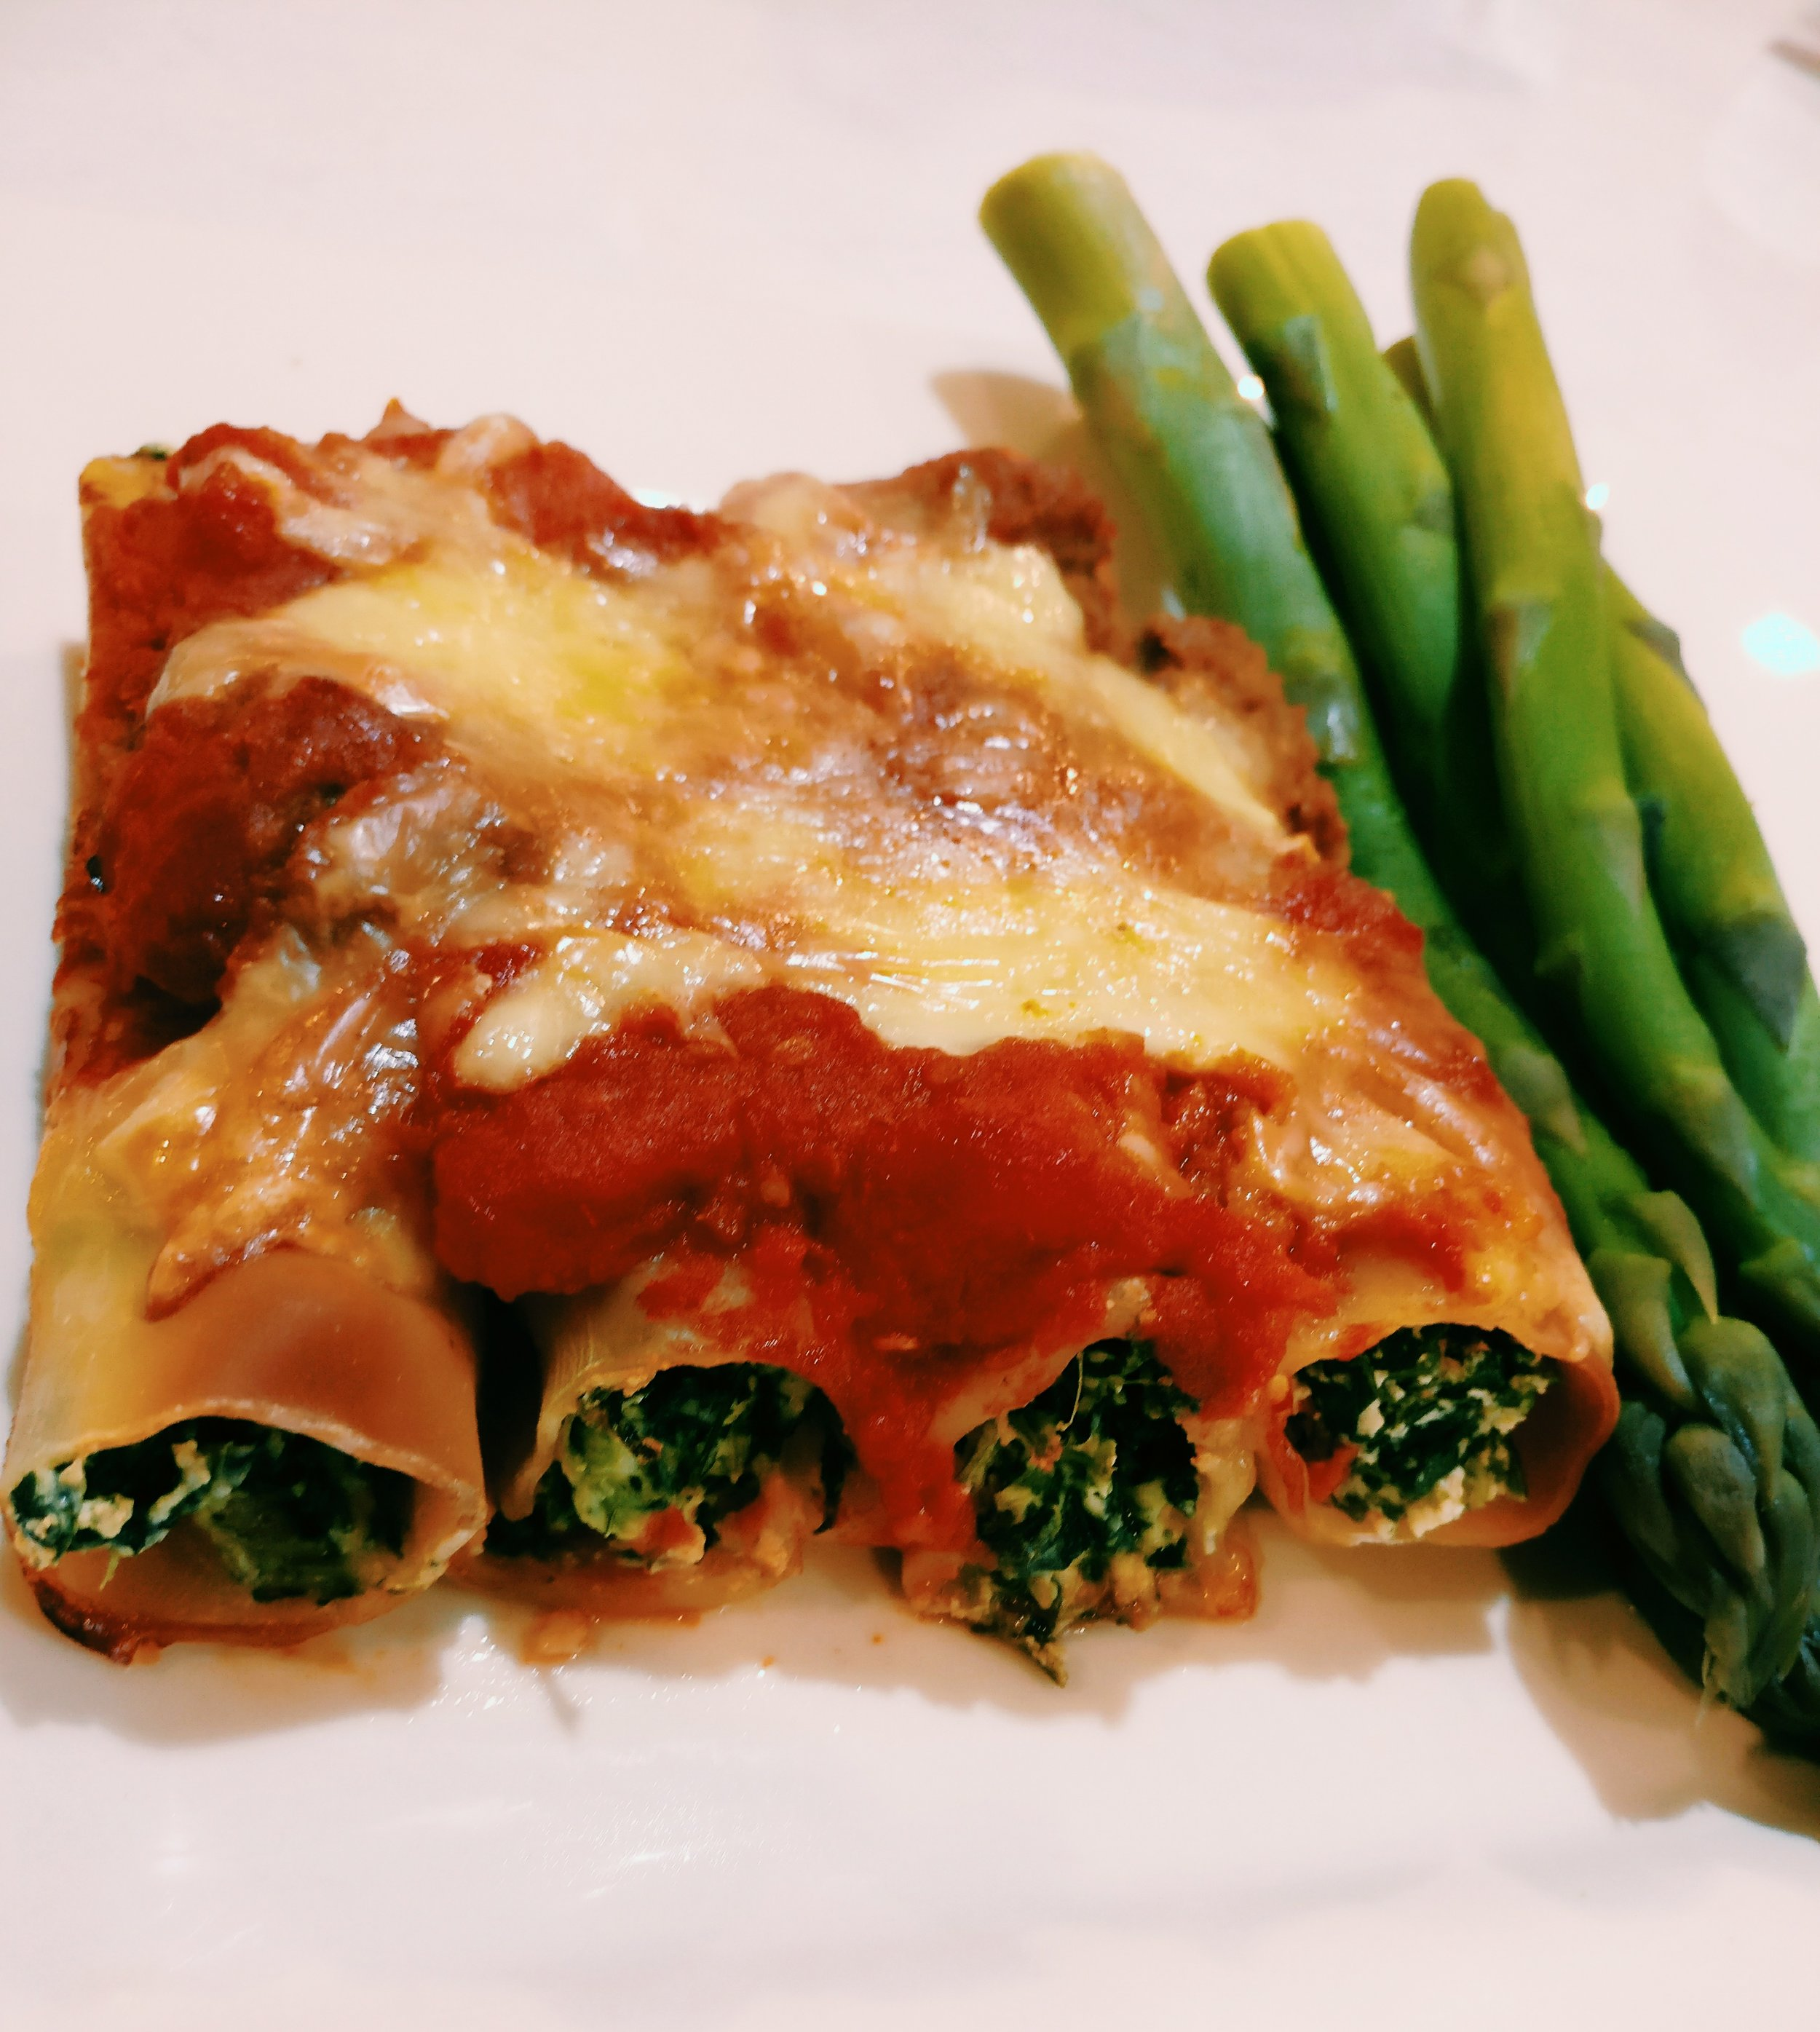 Vegetarian Cannelloni - Ingredients1 Can Chickpeas1 Can Lentils1 Can Chopped Tomatoes (chilli & herb)1/2C Water1/2 Onion - Diced1t Brown Sugar1T Soy Sauce250g Cannelloni200g Ricotta Cheese200g Spinach - Cooked1t Crushed GarlicSalt & Pepper1 Can Chopped Tomatoes in Juice1/4 C WaterGrated CheeseMethod1. Add the chickpeas, lentils, chopped tomatoes, onion, water, brown sugar and soy sauce to a slow cooker and cook on low for 4 hours2. Whizz the lentil mix in a food processor until it turns into a paste3. In a bowl, combine the ricotta cheese, spinach, garlic, salt and pepper4. Fill the cannelloni with with ricotta cheese mix and place in an oven proof dish5. Combine half of the lentil mix with the tin of tomatoes and water, pour on top of the cannelloni6. Sprinkle with the grated cheese and bake in the oven at 170 for 30-35 minutes or until the cannelloni is cooked though (you may need to add some more water throughout cooking if it looks like it is drying out)